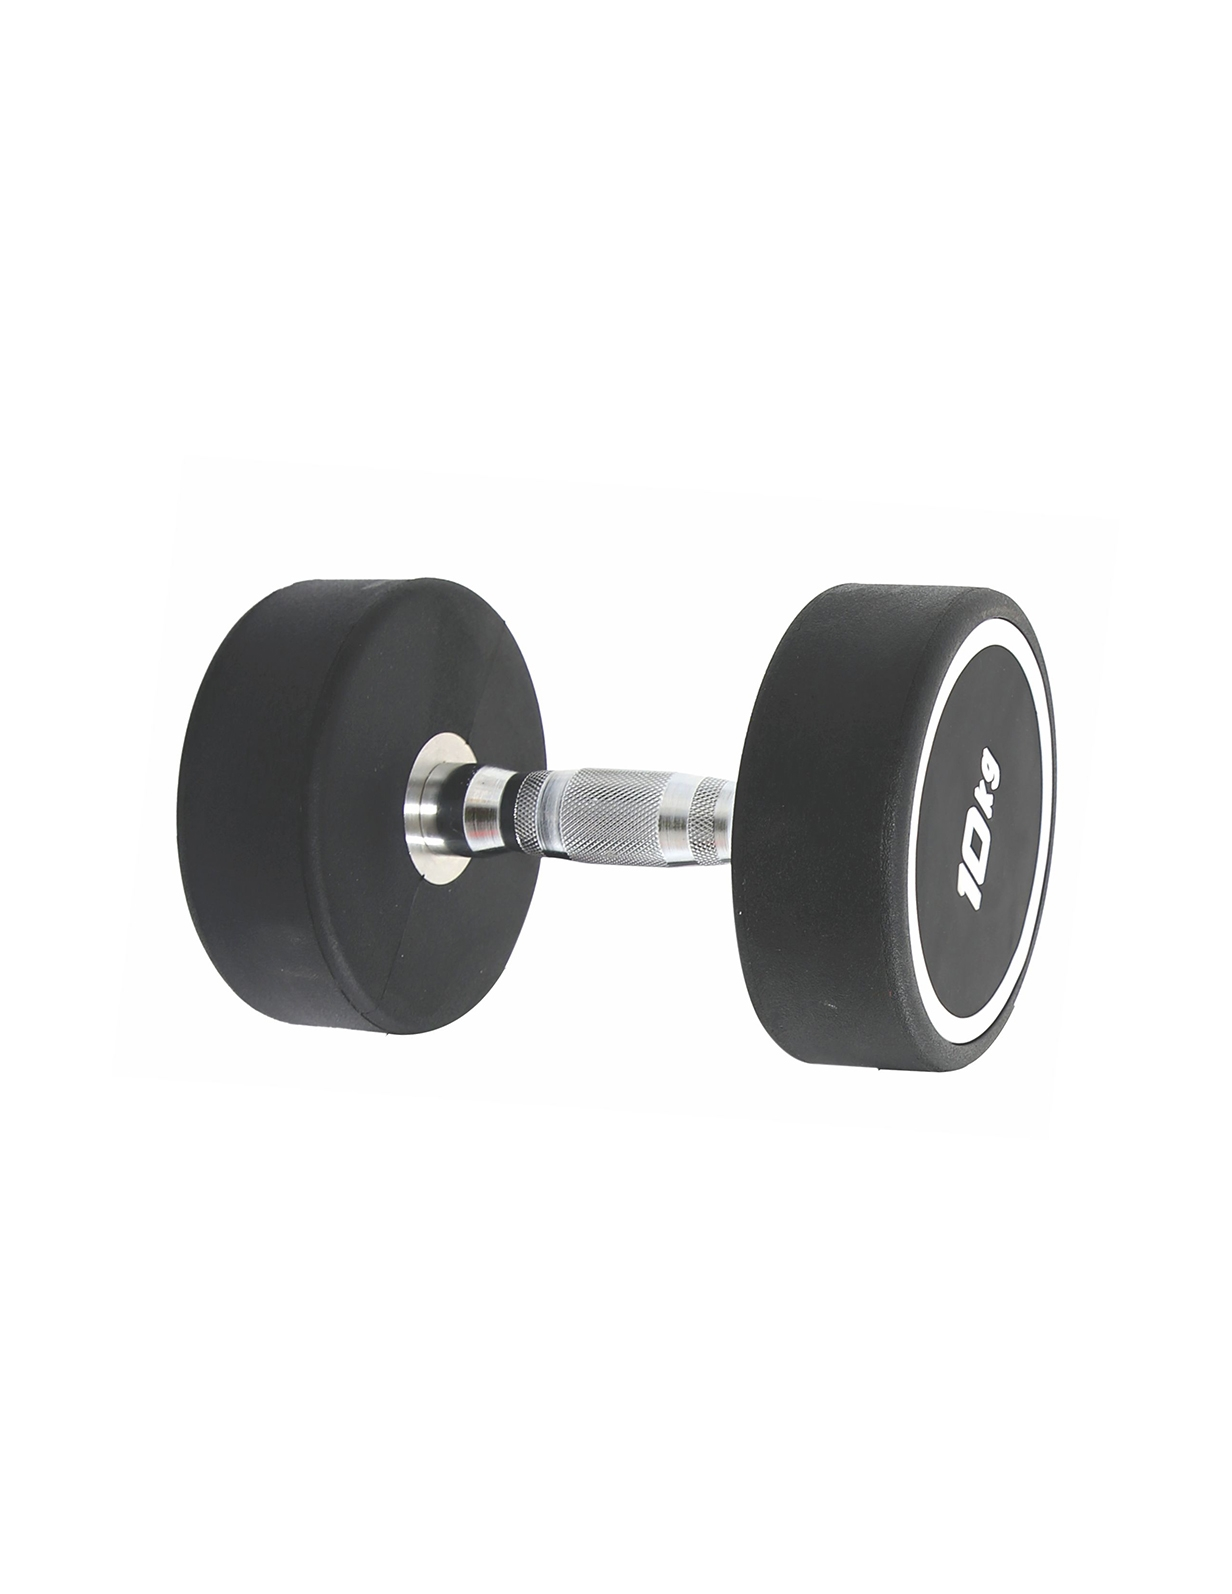 IMPORTED WELCARE ROUND  DUMBBELLS PEV RUBBER